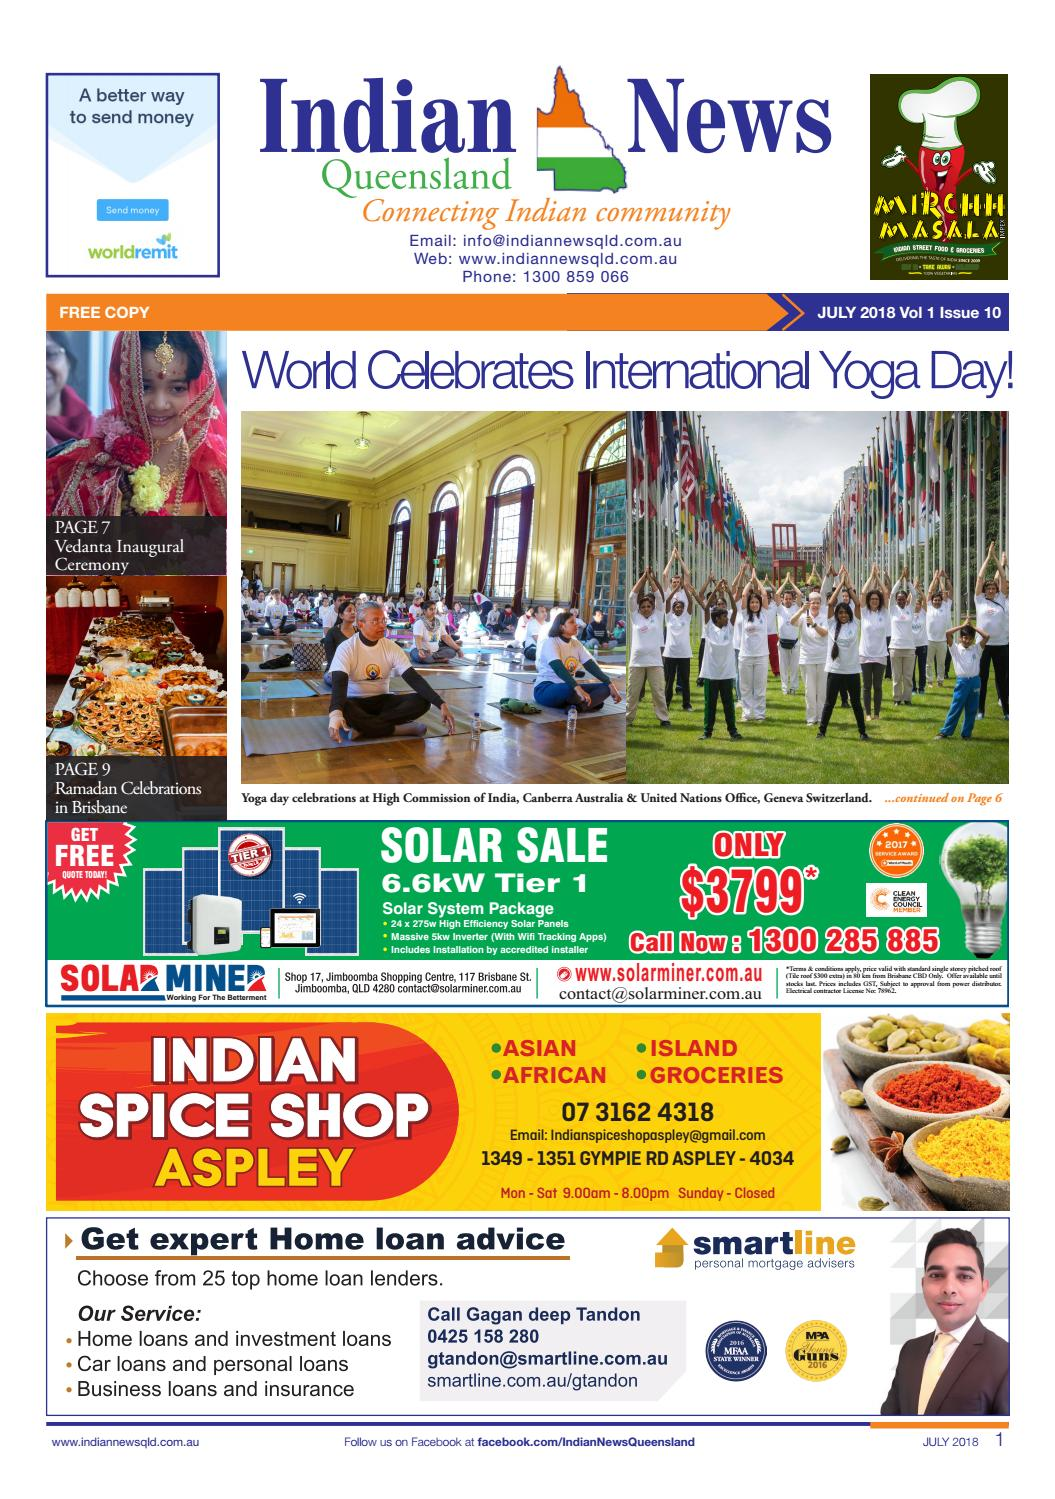 Indian News Queensland- July Issue 10 Vol 1 by Indian News